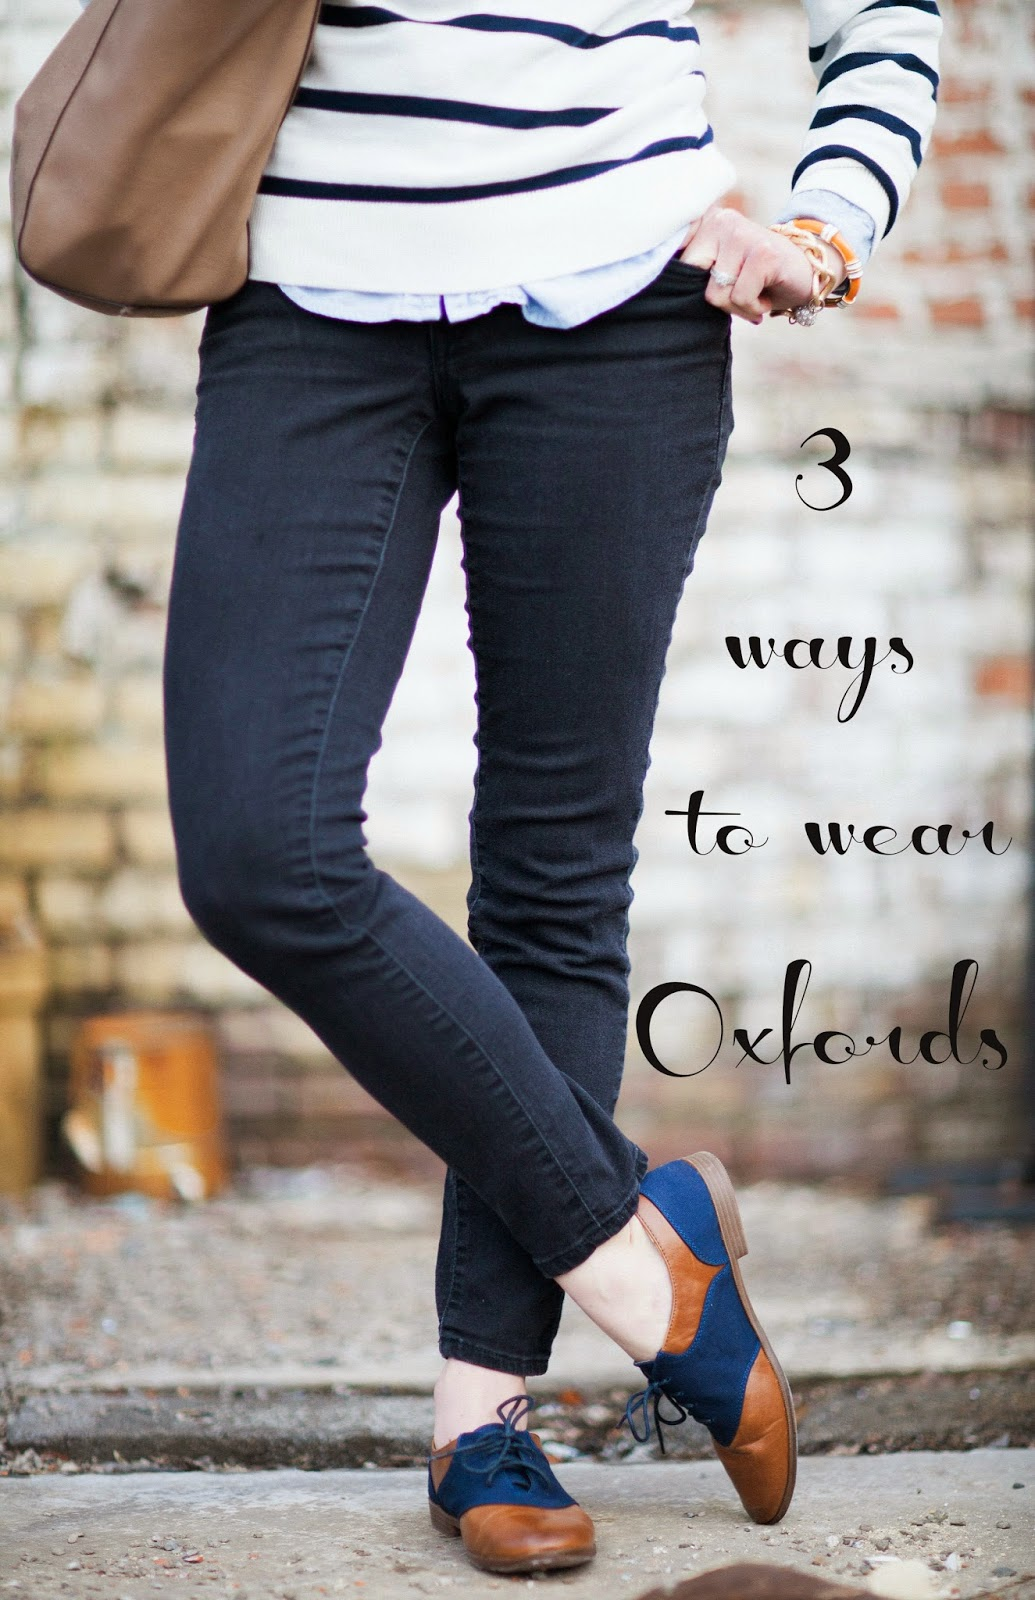 With what to wear Oxford